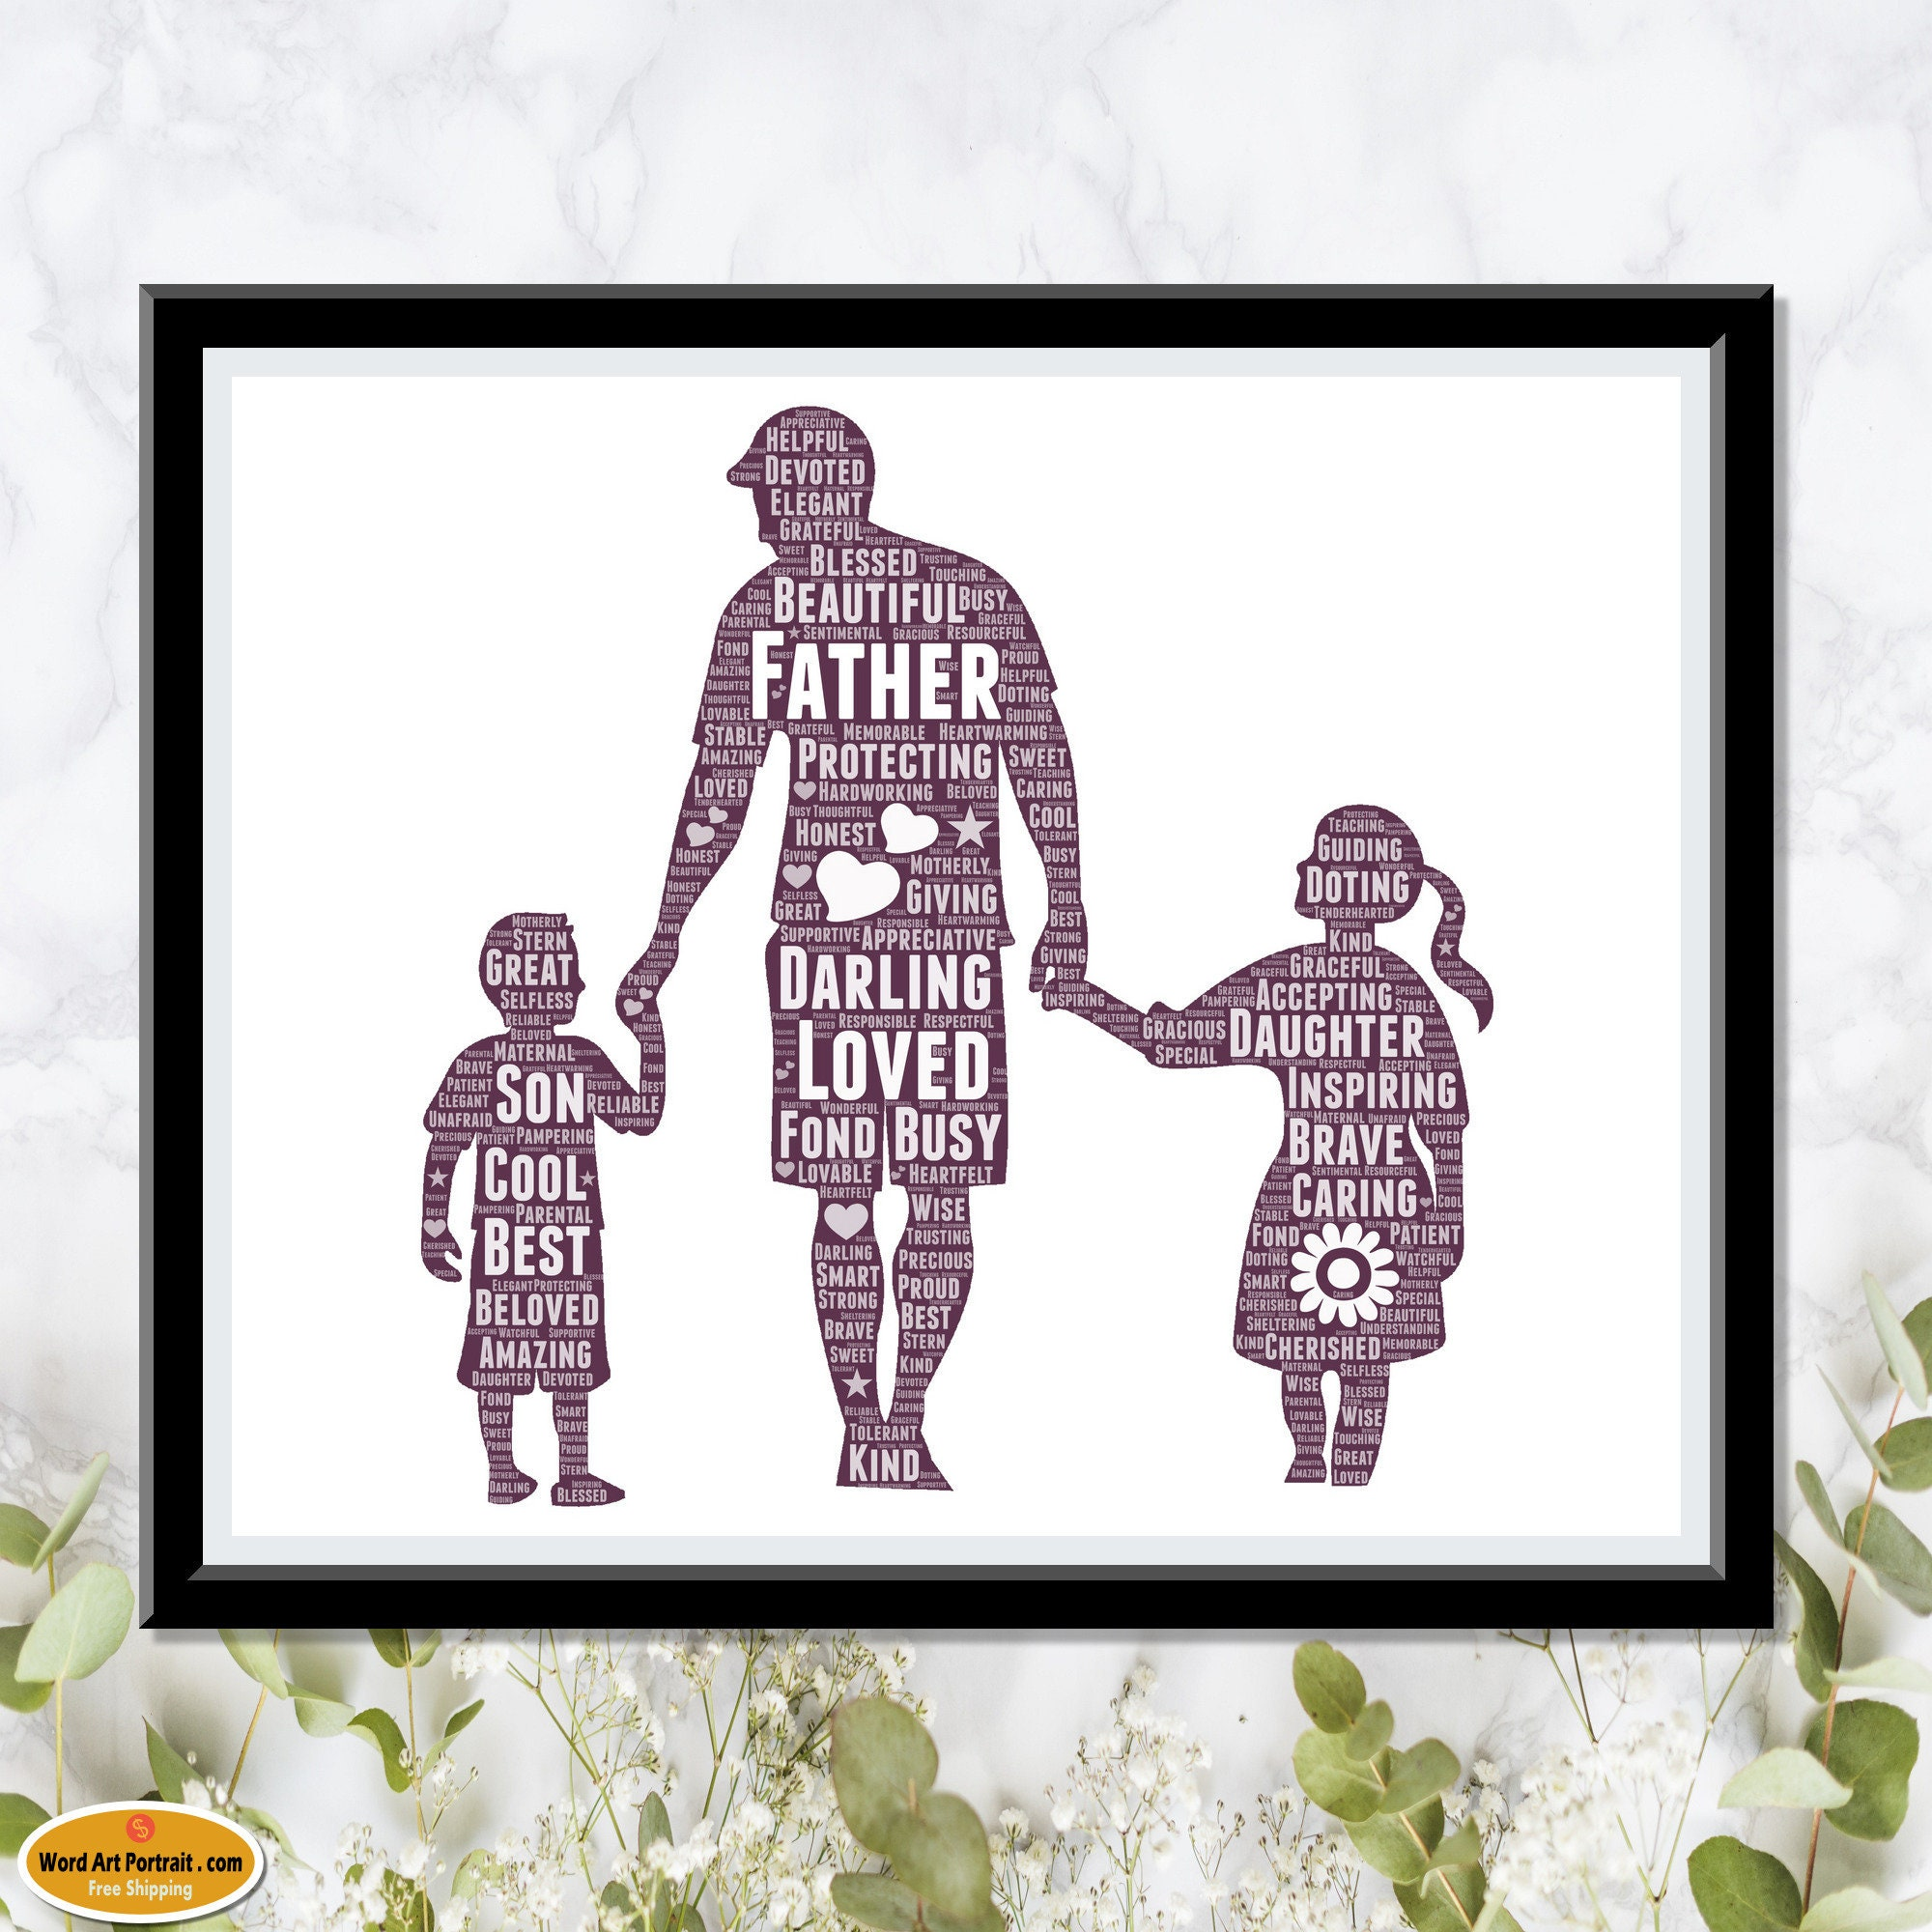 Happy Fathers Day Gift - Personalized Word Art Print for Dad - Gift from Son - Gift from Daughter - Custom Wall Decor